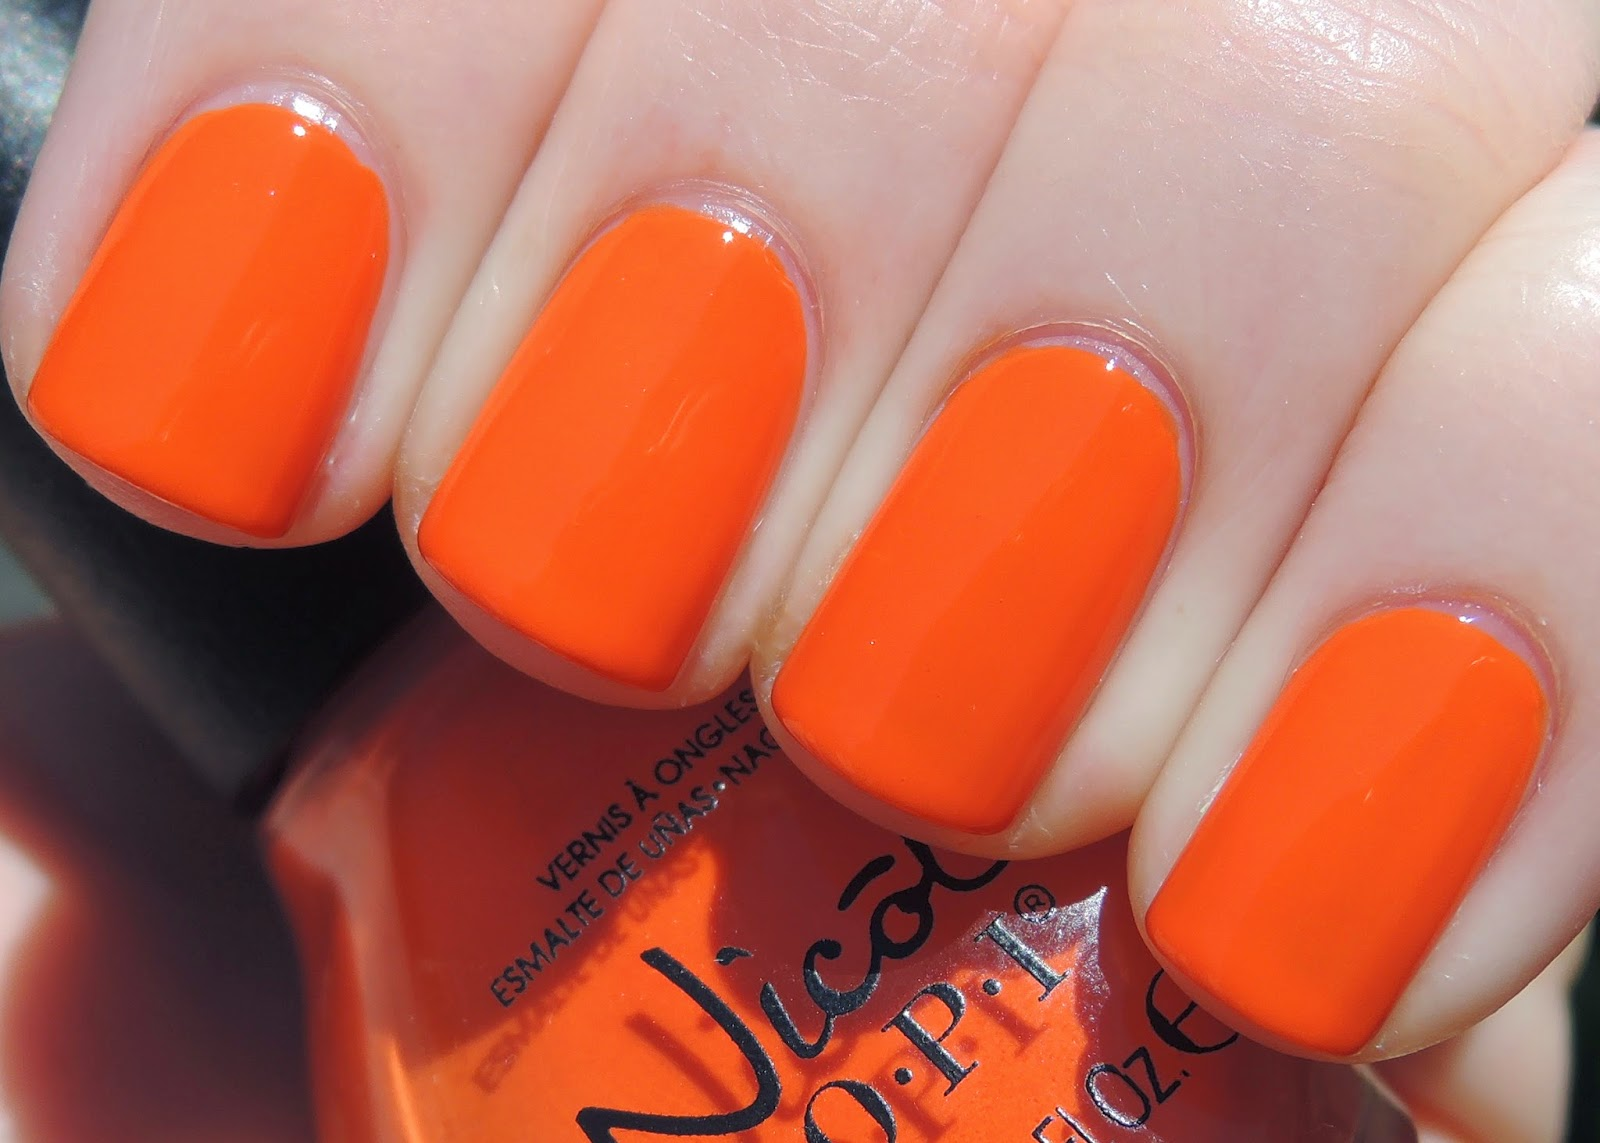 NOPI The Look is Orange swatch Nicole by OPI